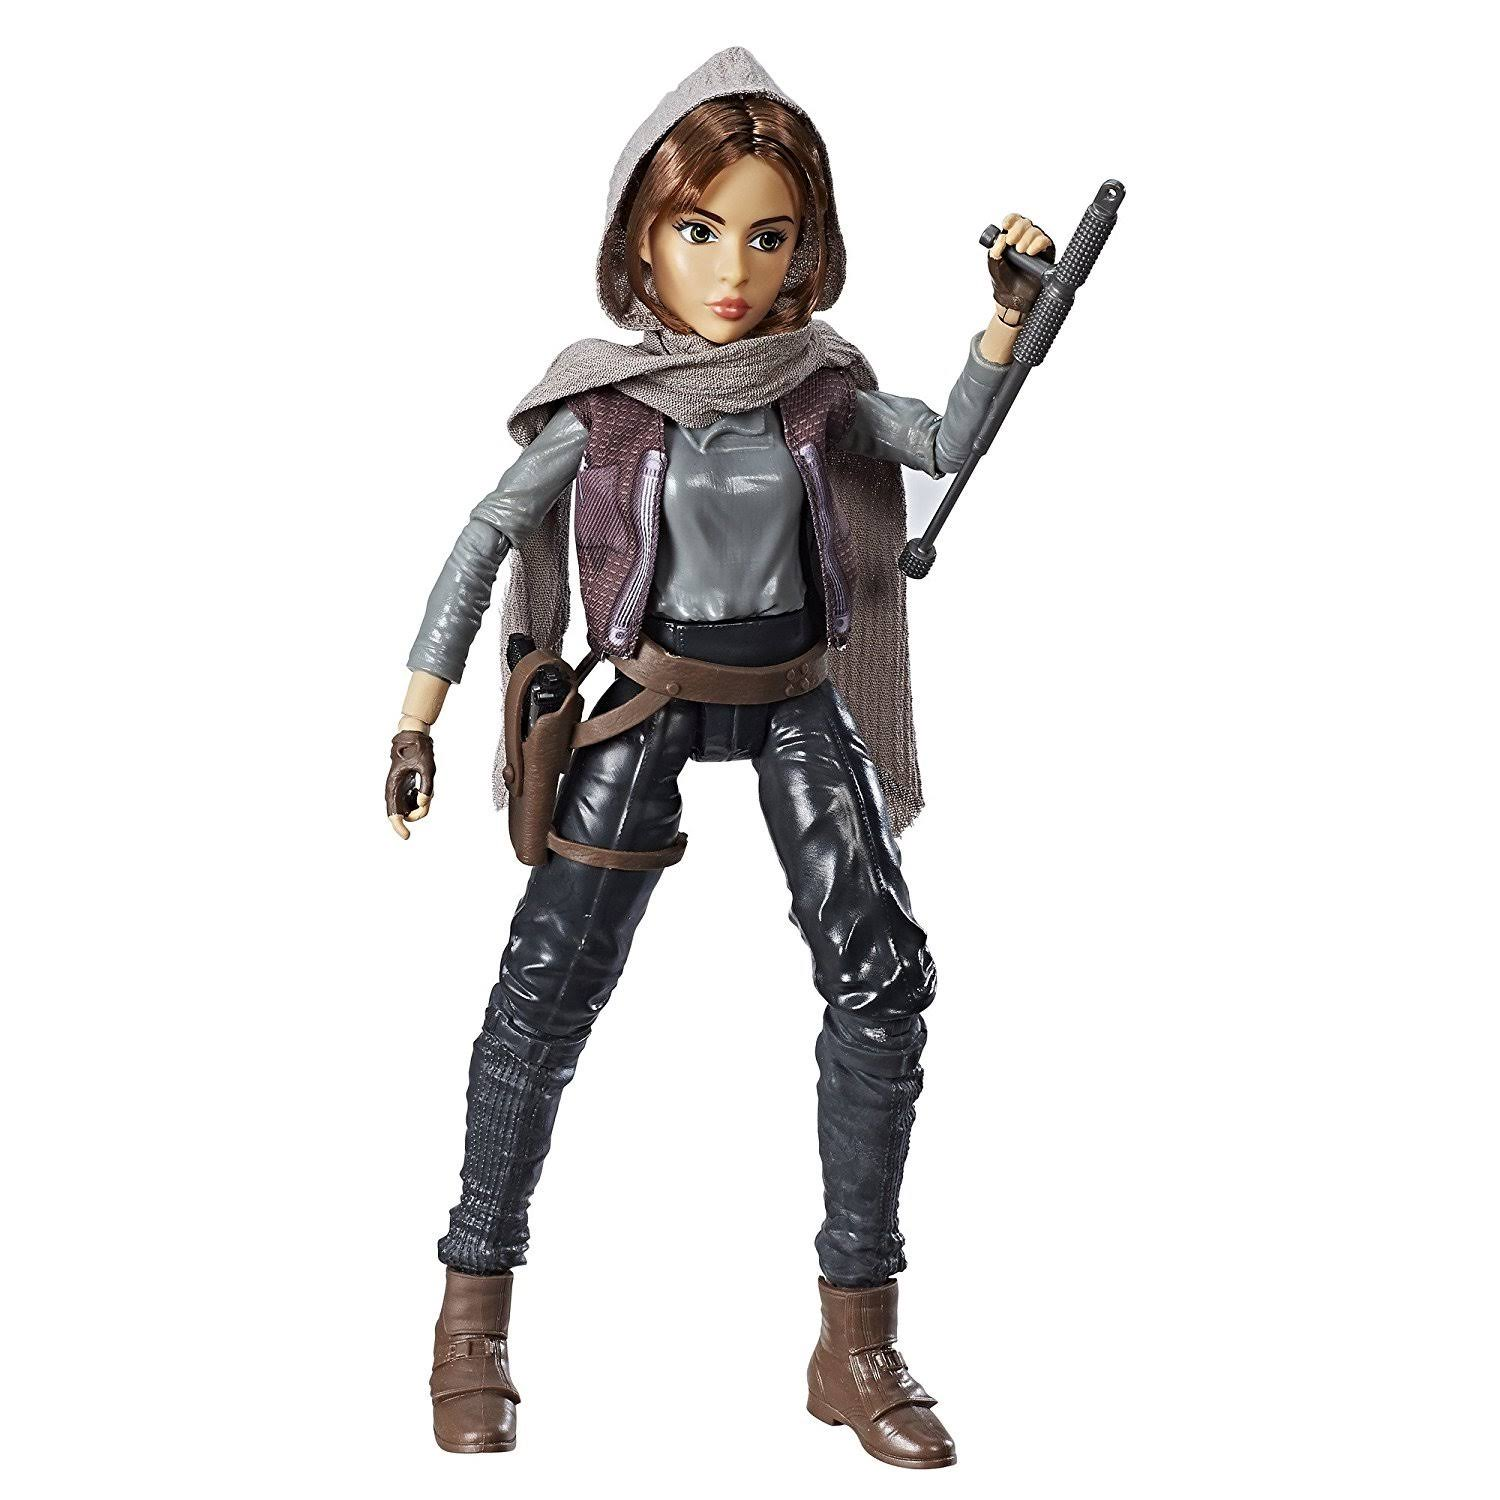 Star Wars Forces of Destiny Jyn Erso Adventure Action Figure